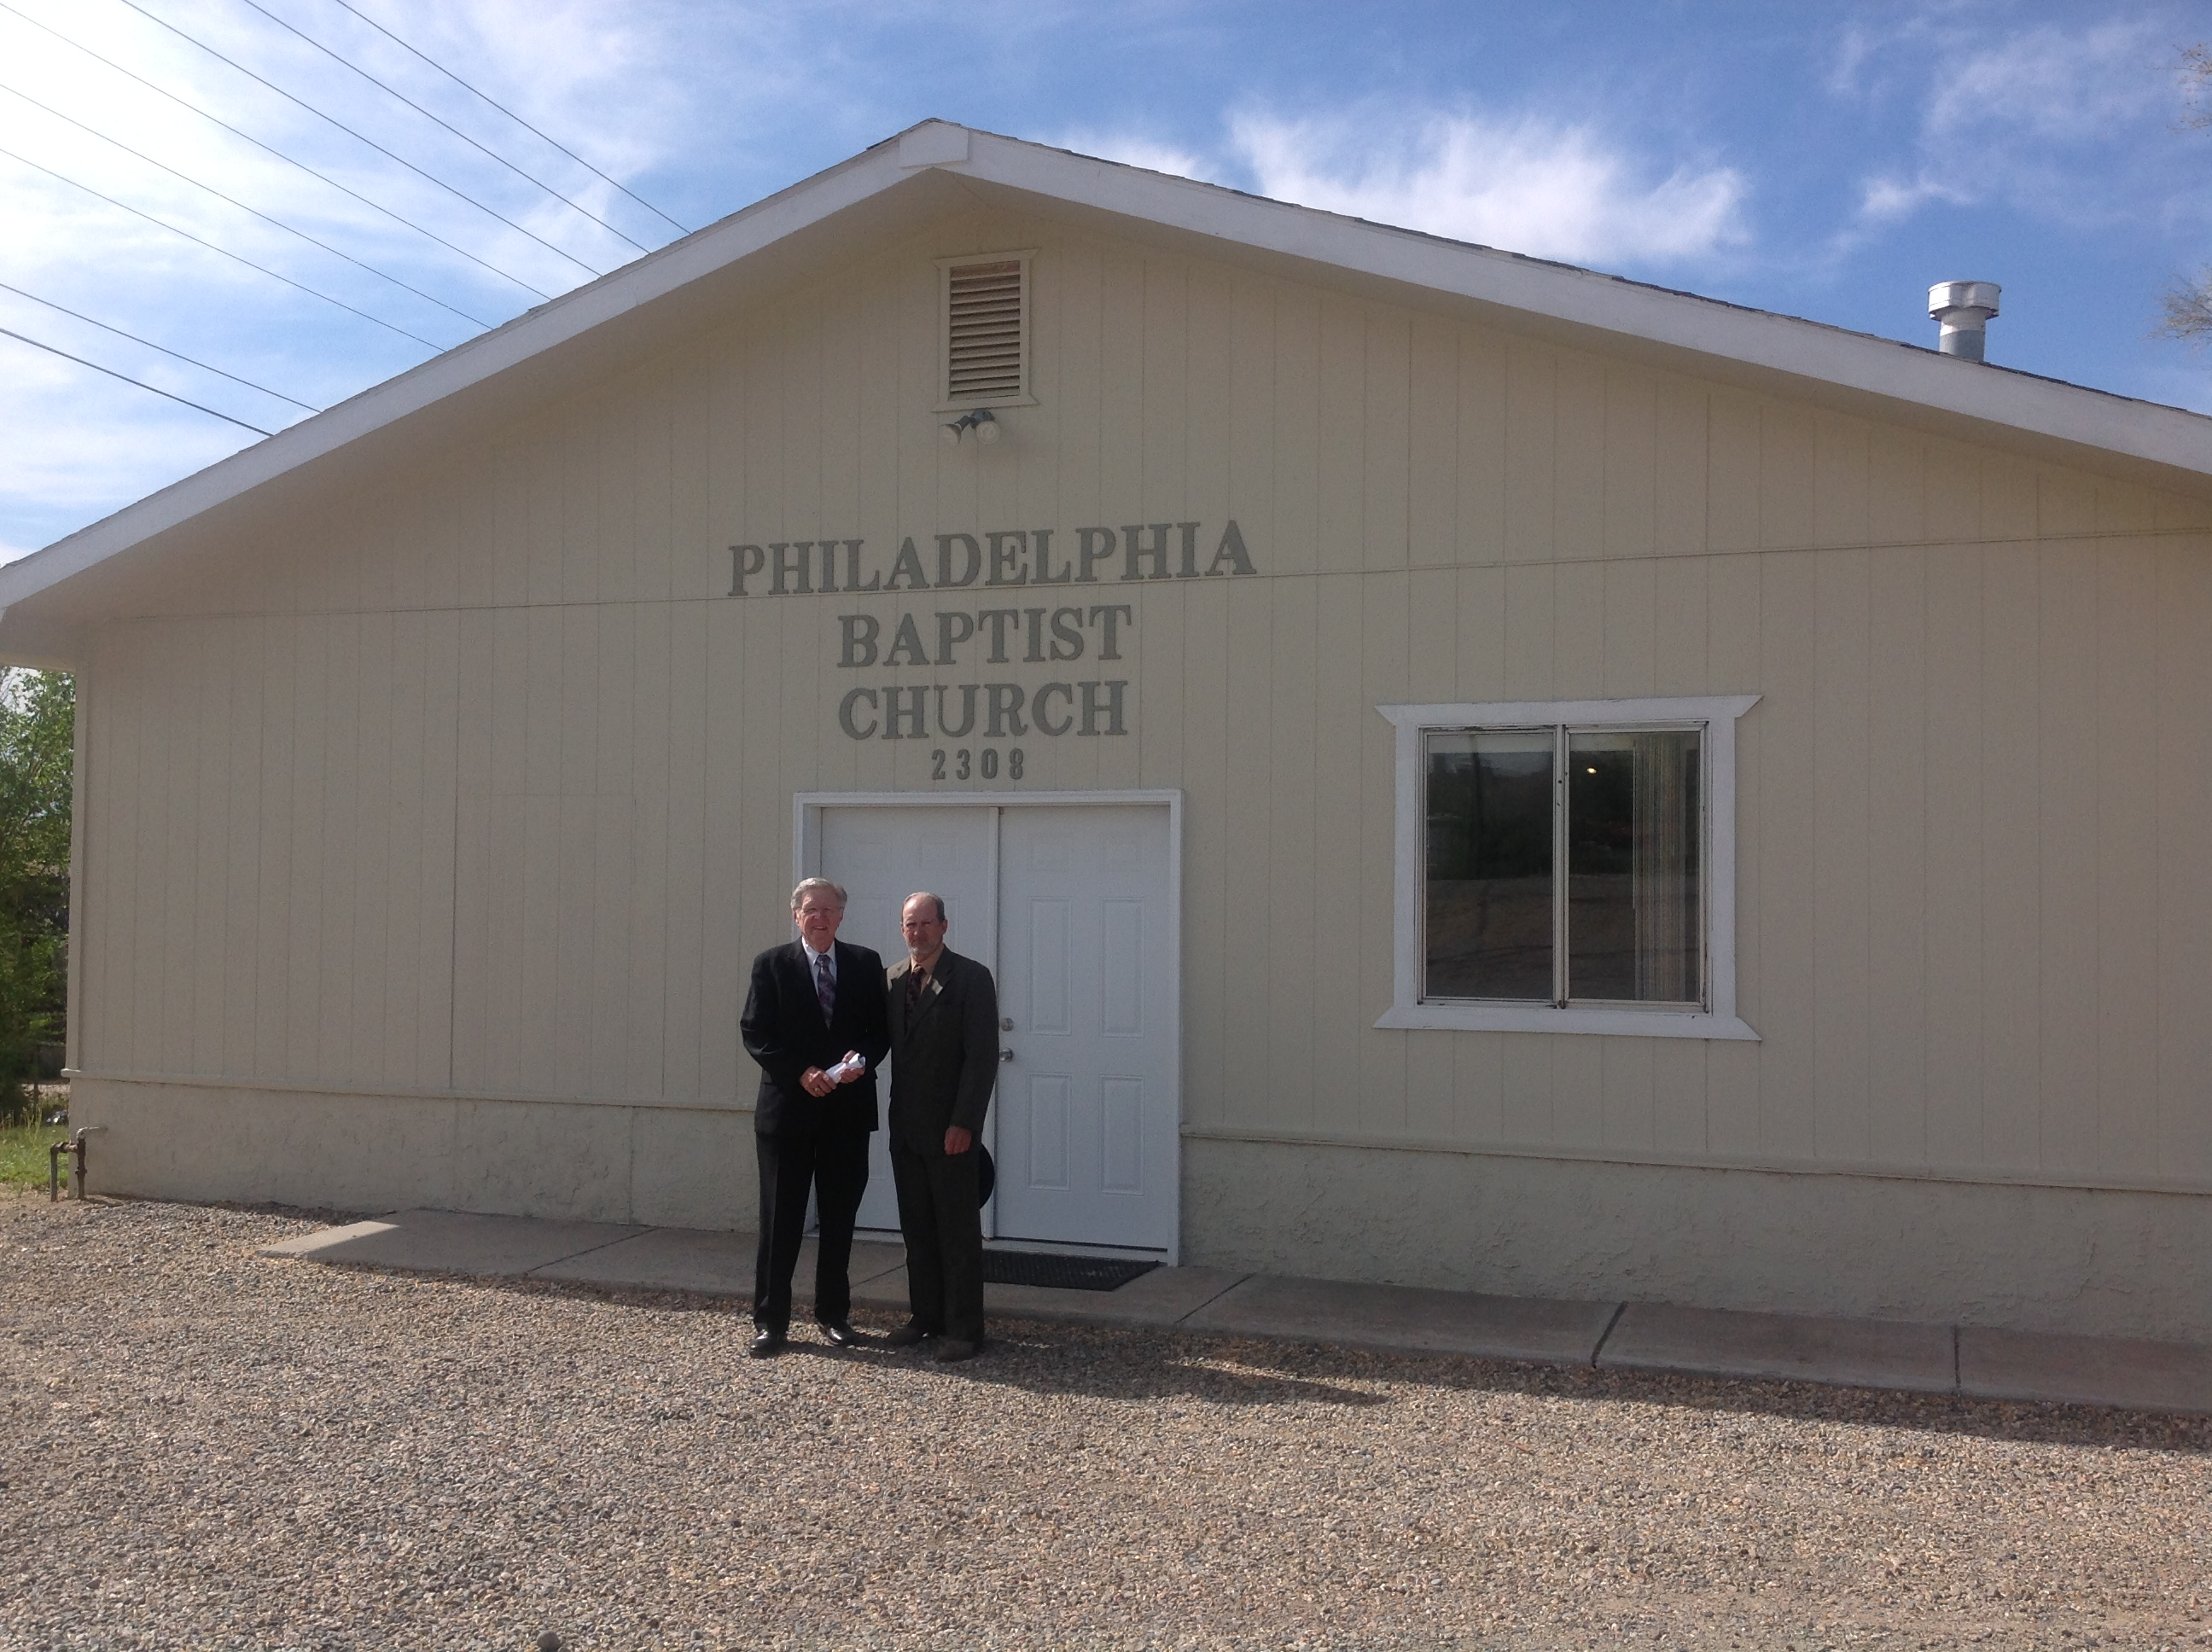 Visiting Philedelphia Baptist Church in Aztec, New Mexico